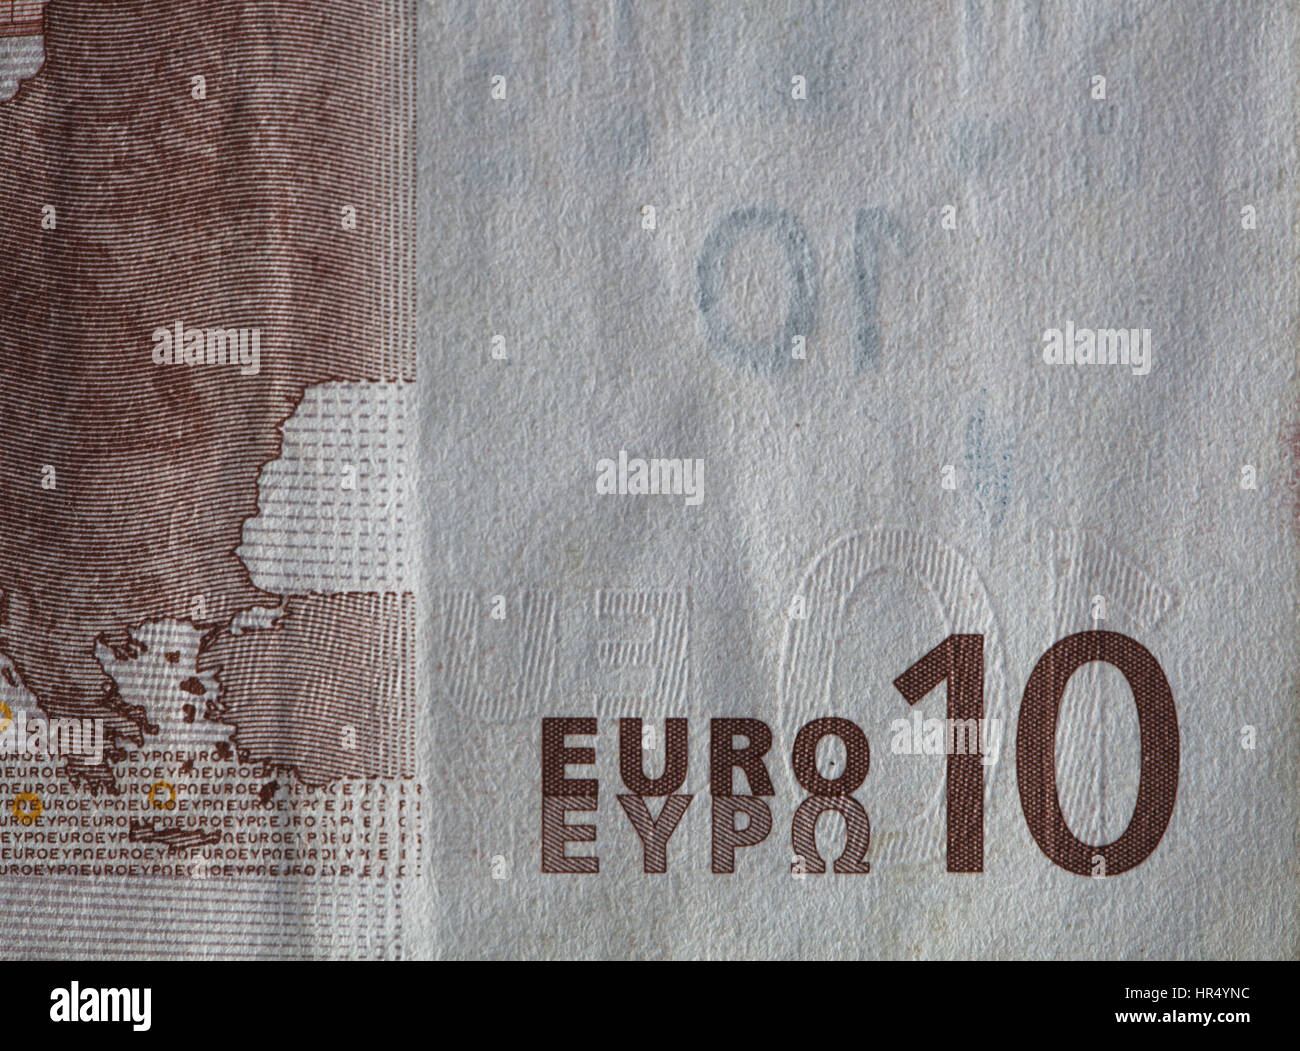 Closeup of a used 10 Euro paper money bill - Stock Image